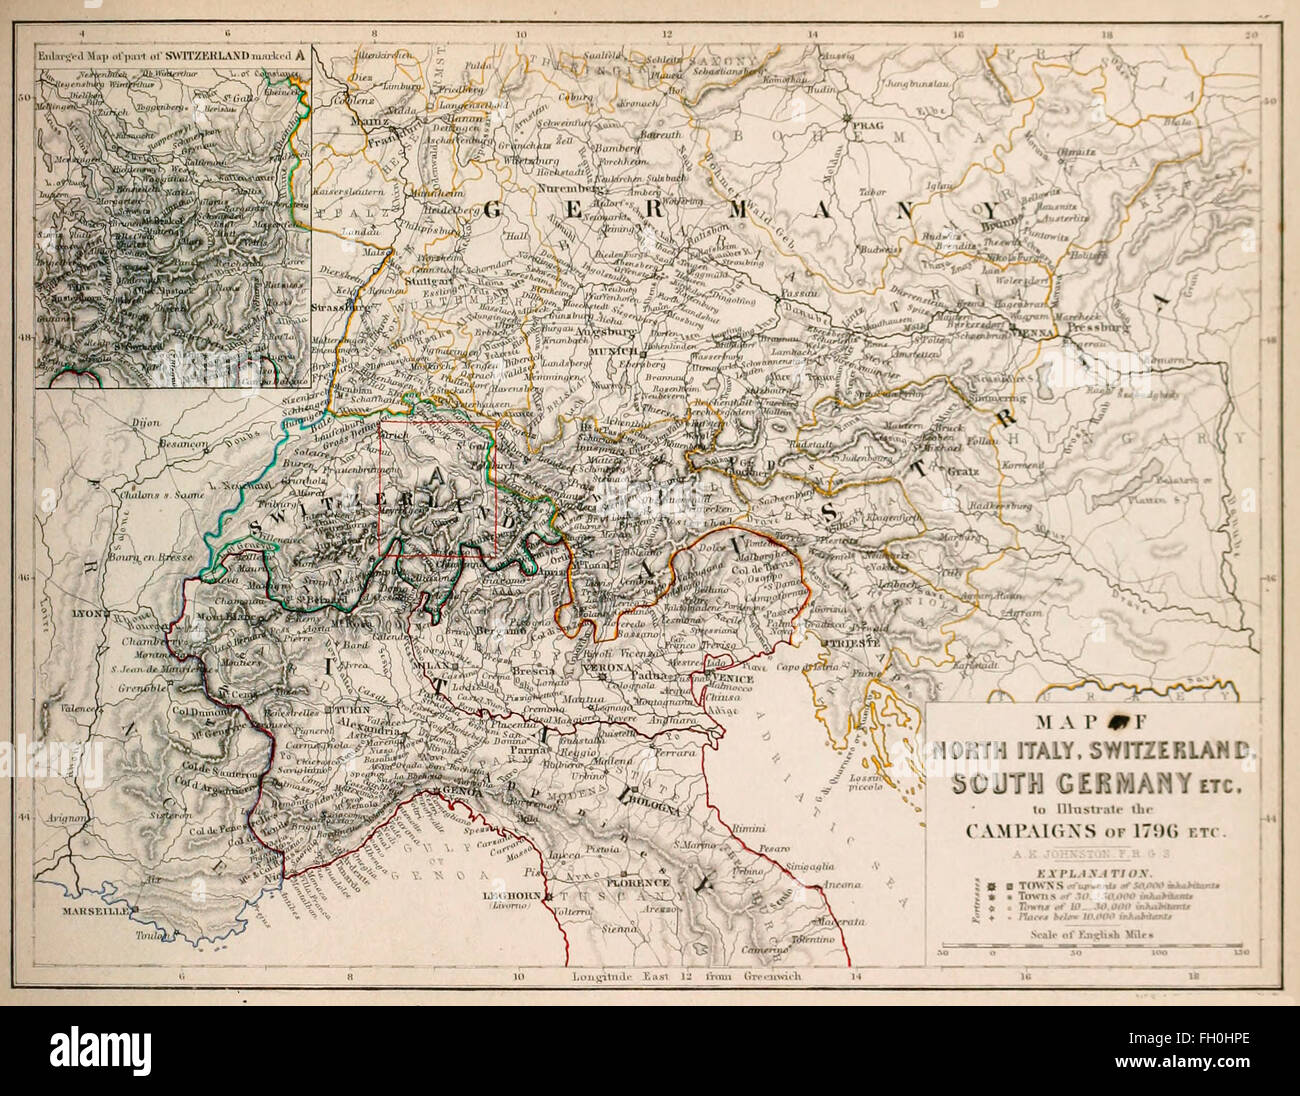 Map of North Italy Switzerland South Germany etc to illustrate